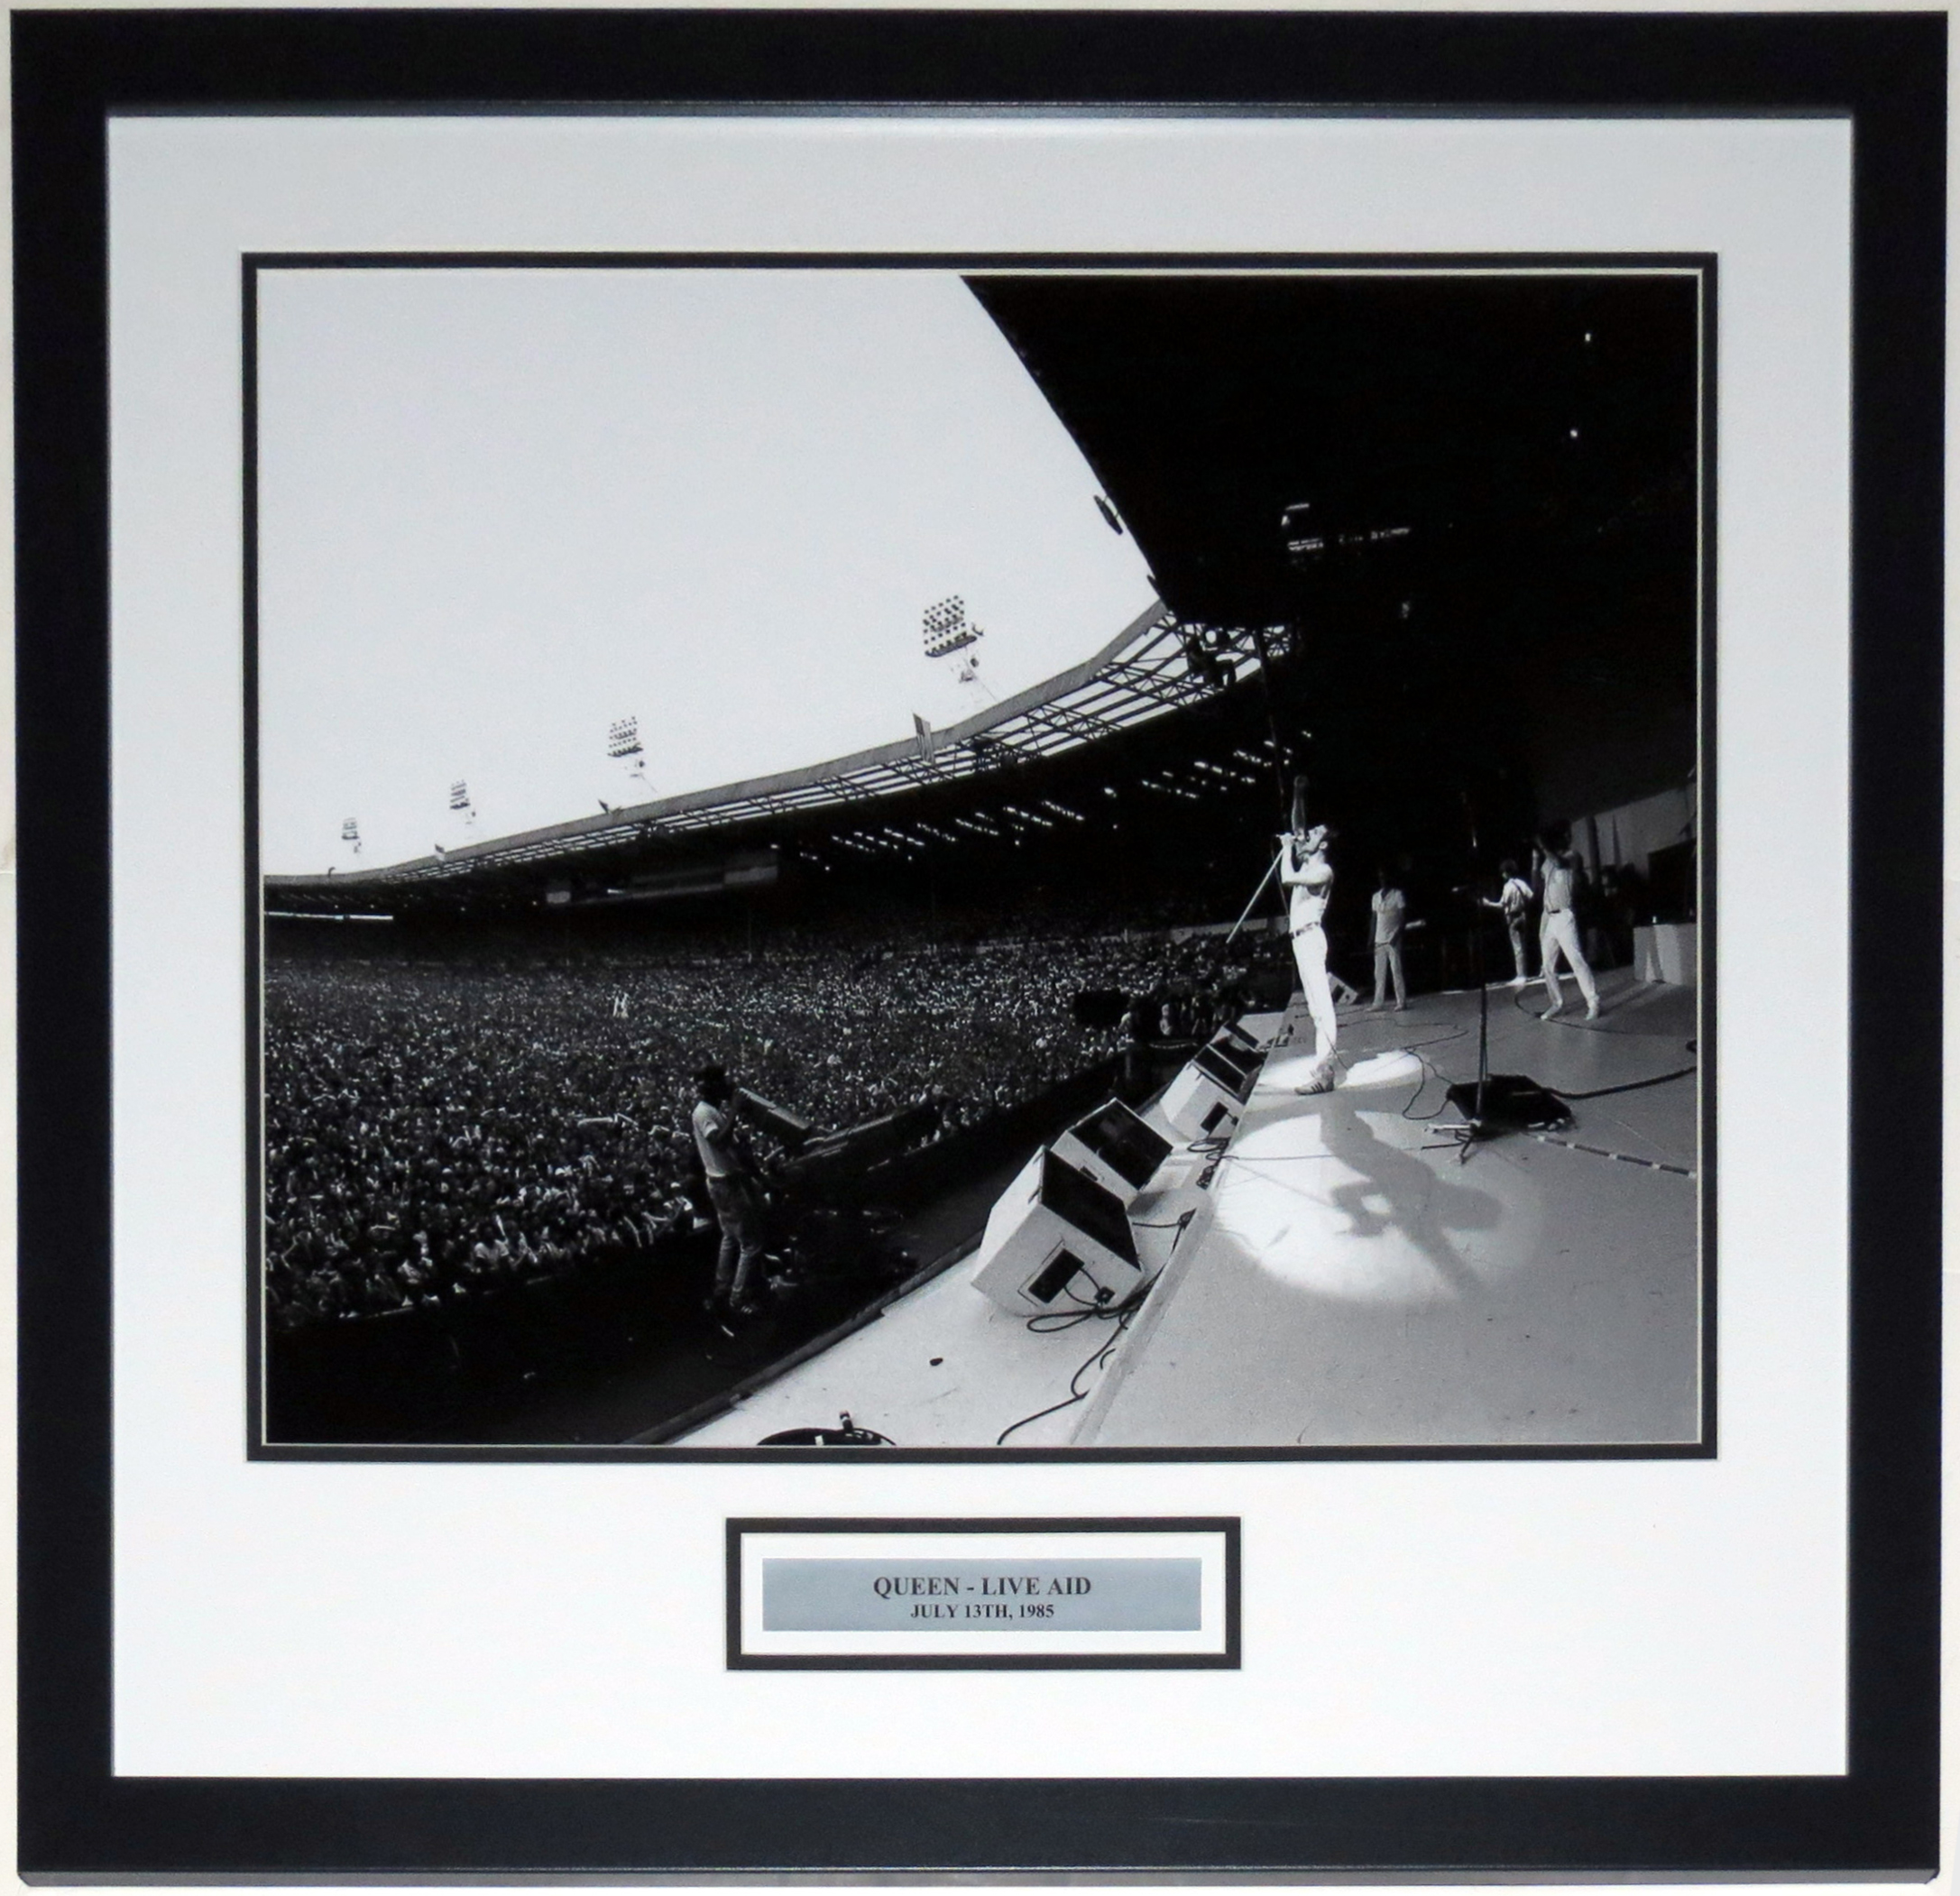 Freddy Mercury Queen Live Aid Concert 16x20 Photo - Professionally Framed & Plate